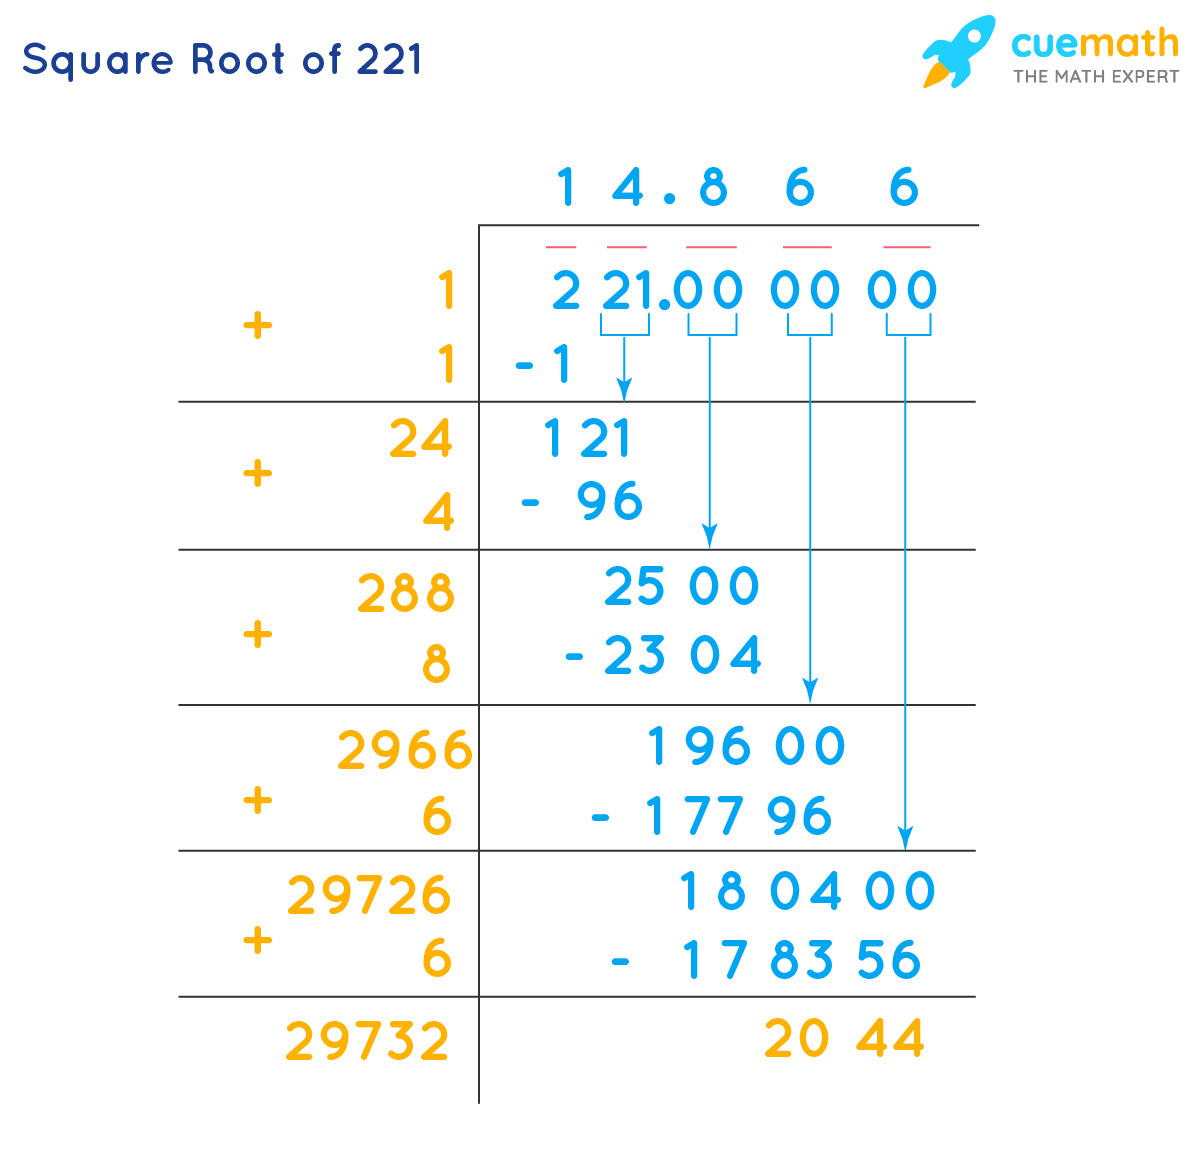 Square root of 221